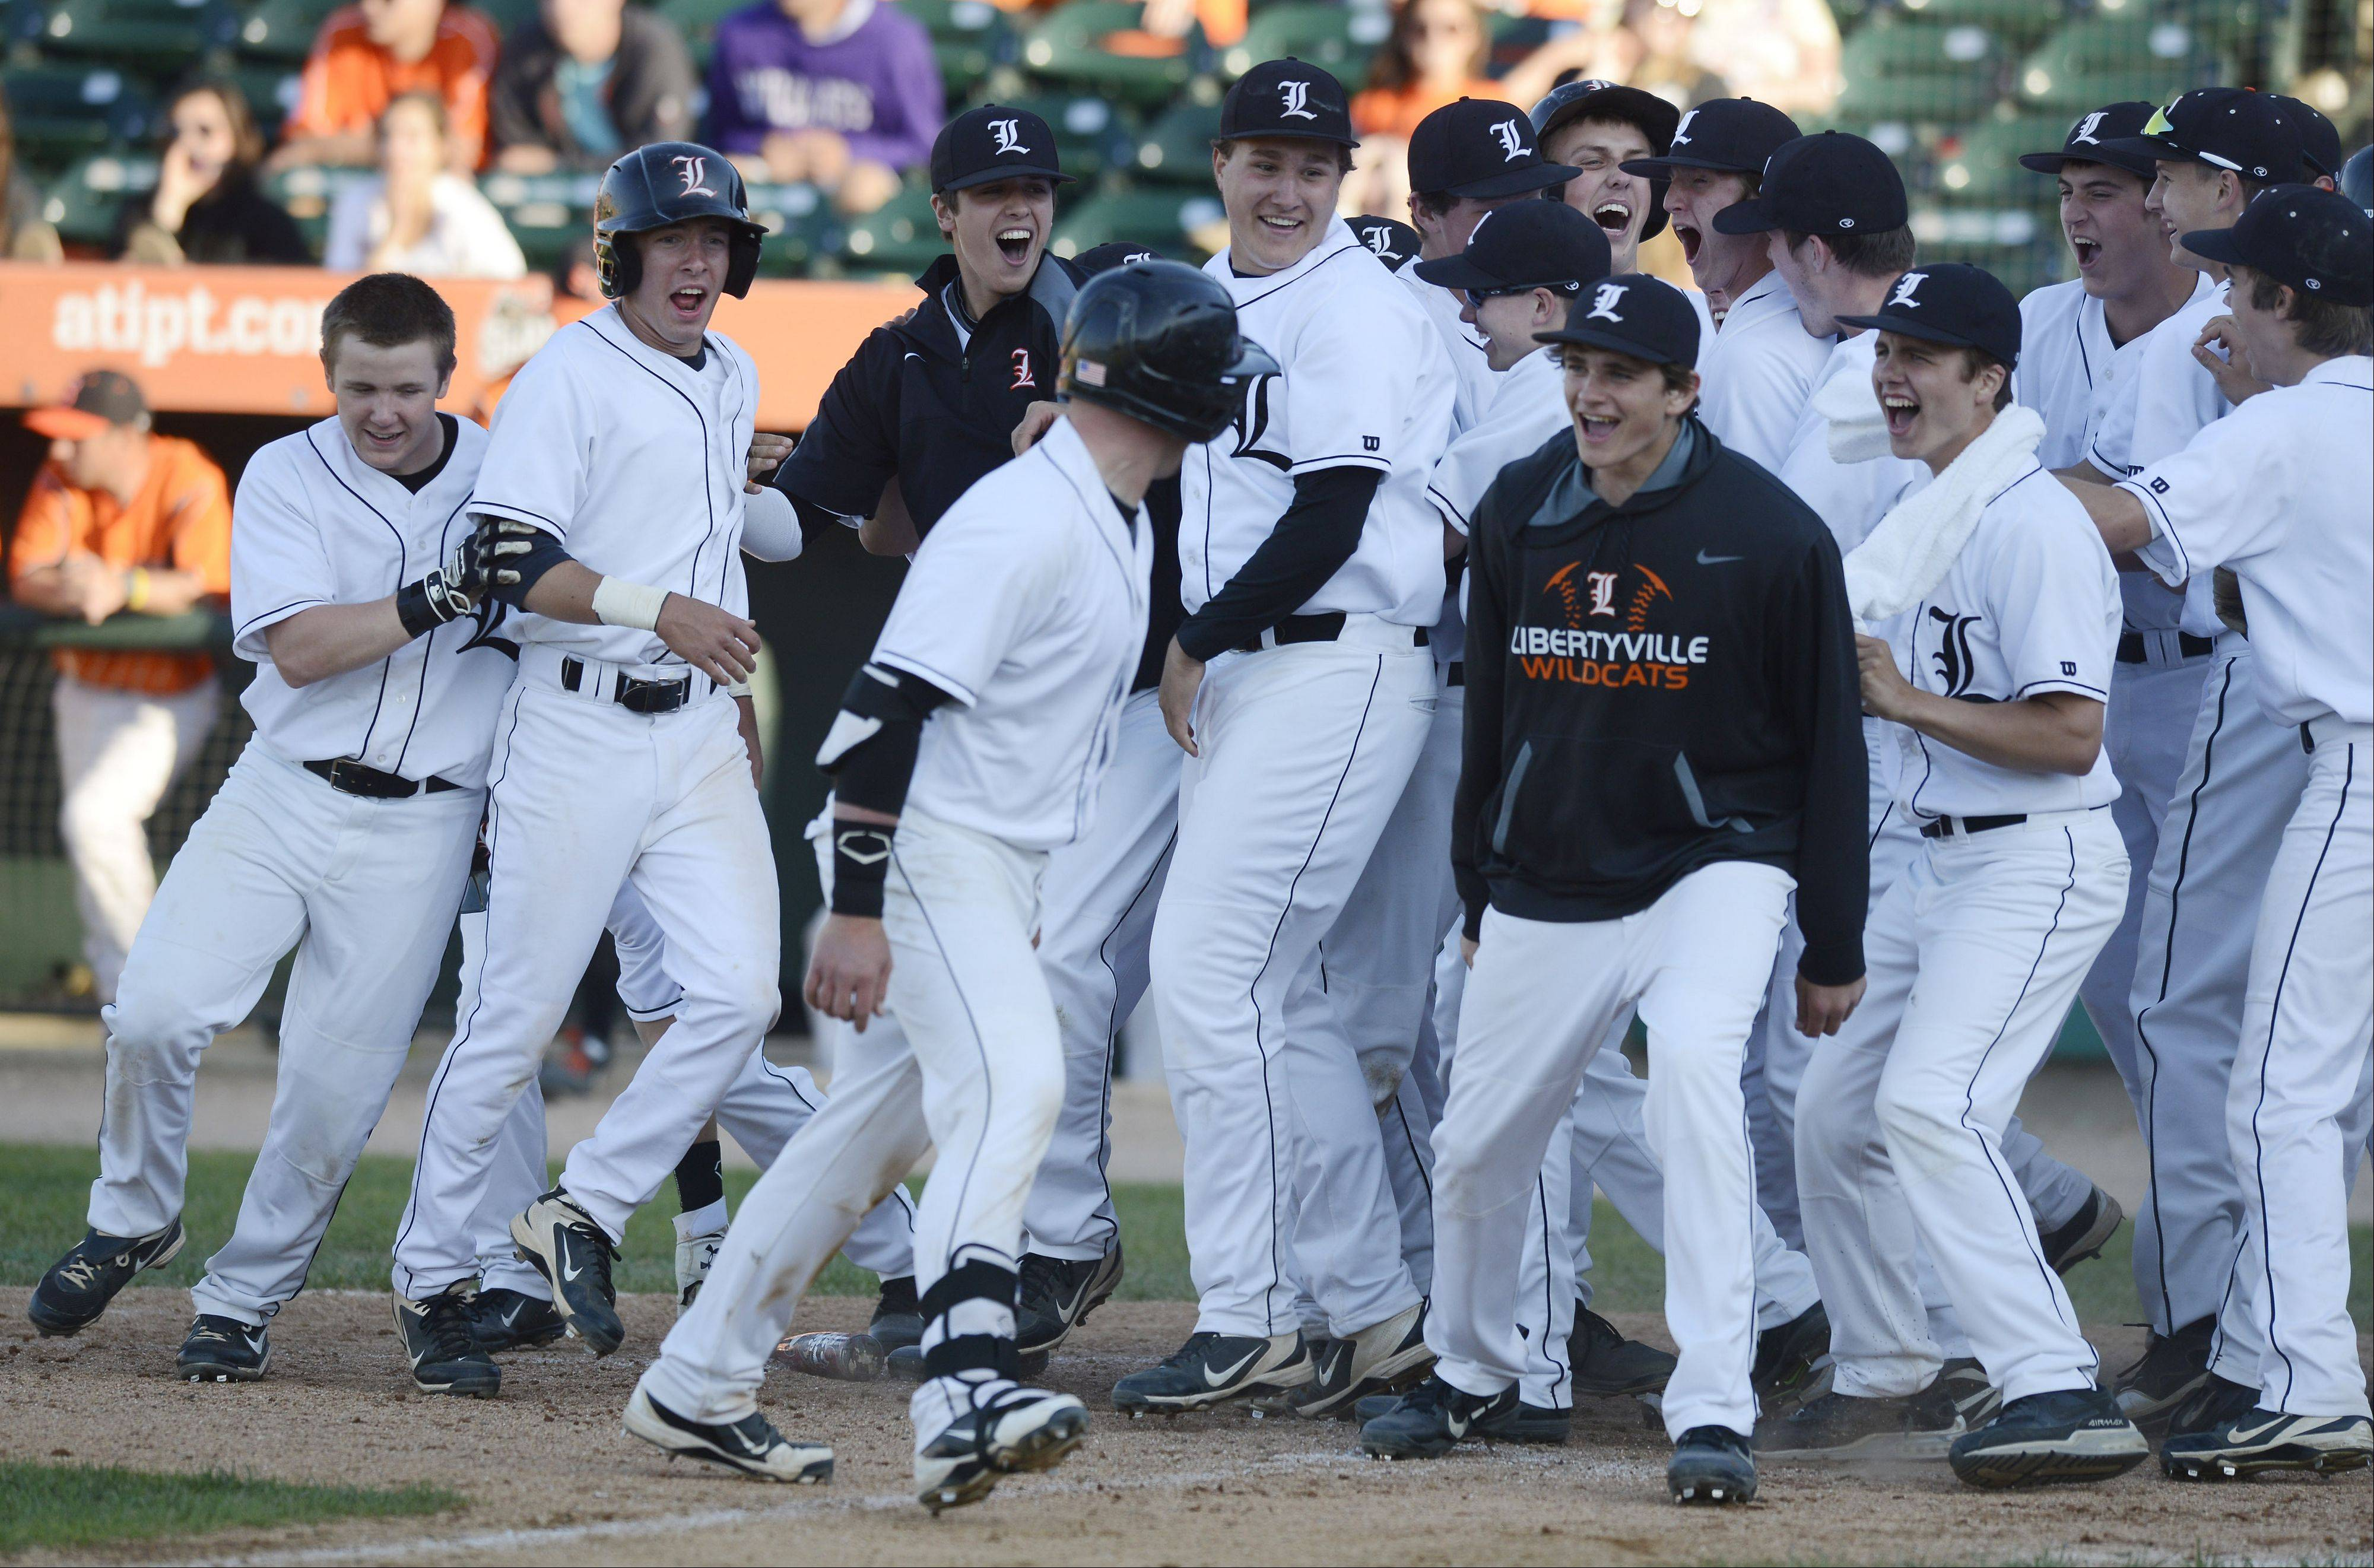 Libertyville�s Evan Skoug is greeted at the plate by his teammates after hitting a fourth-inning grand slam against St. Charles East during the Class 4A state baseball semifinals at Silver Cross Field in Joliet Friday.